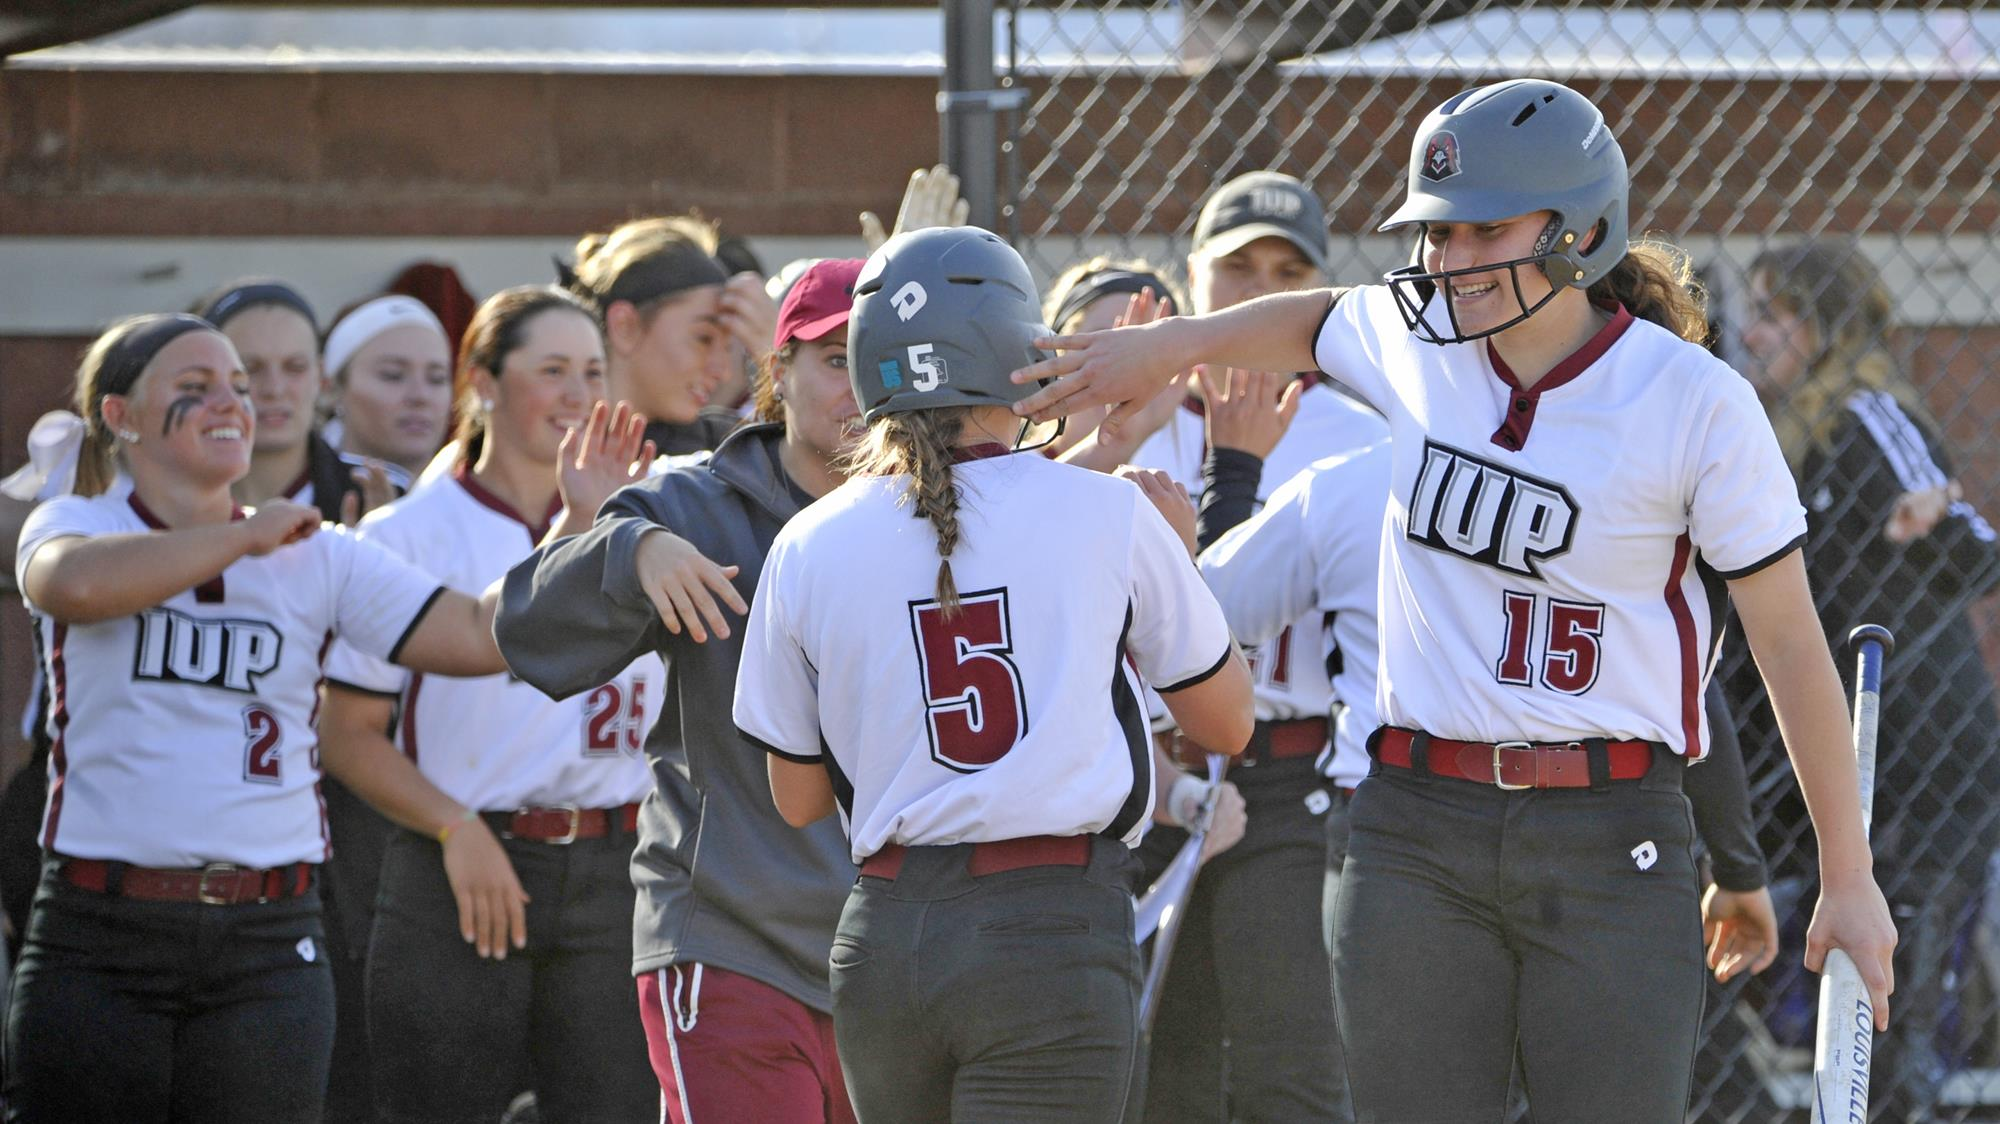 IUP Softball announces fall tryout for 2019 season - Indiana